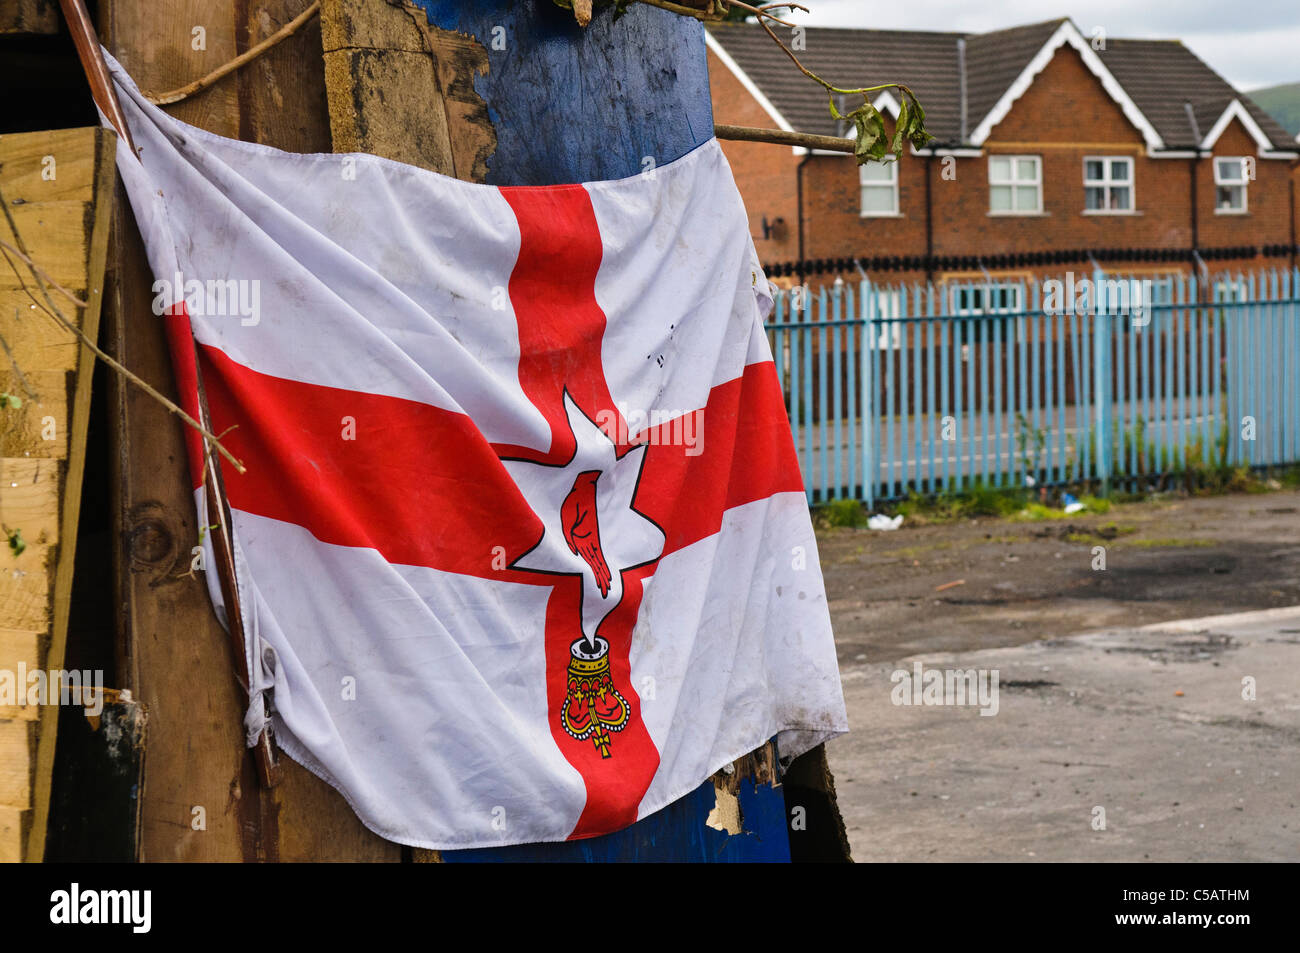 Ulster flag at a bonfire site, hung by protestants upside down, a sign of disrespect. - Stock Image